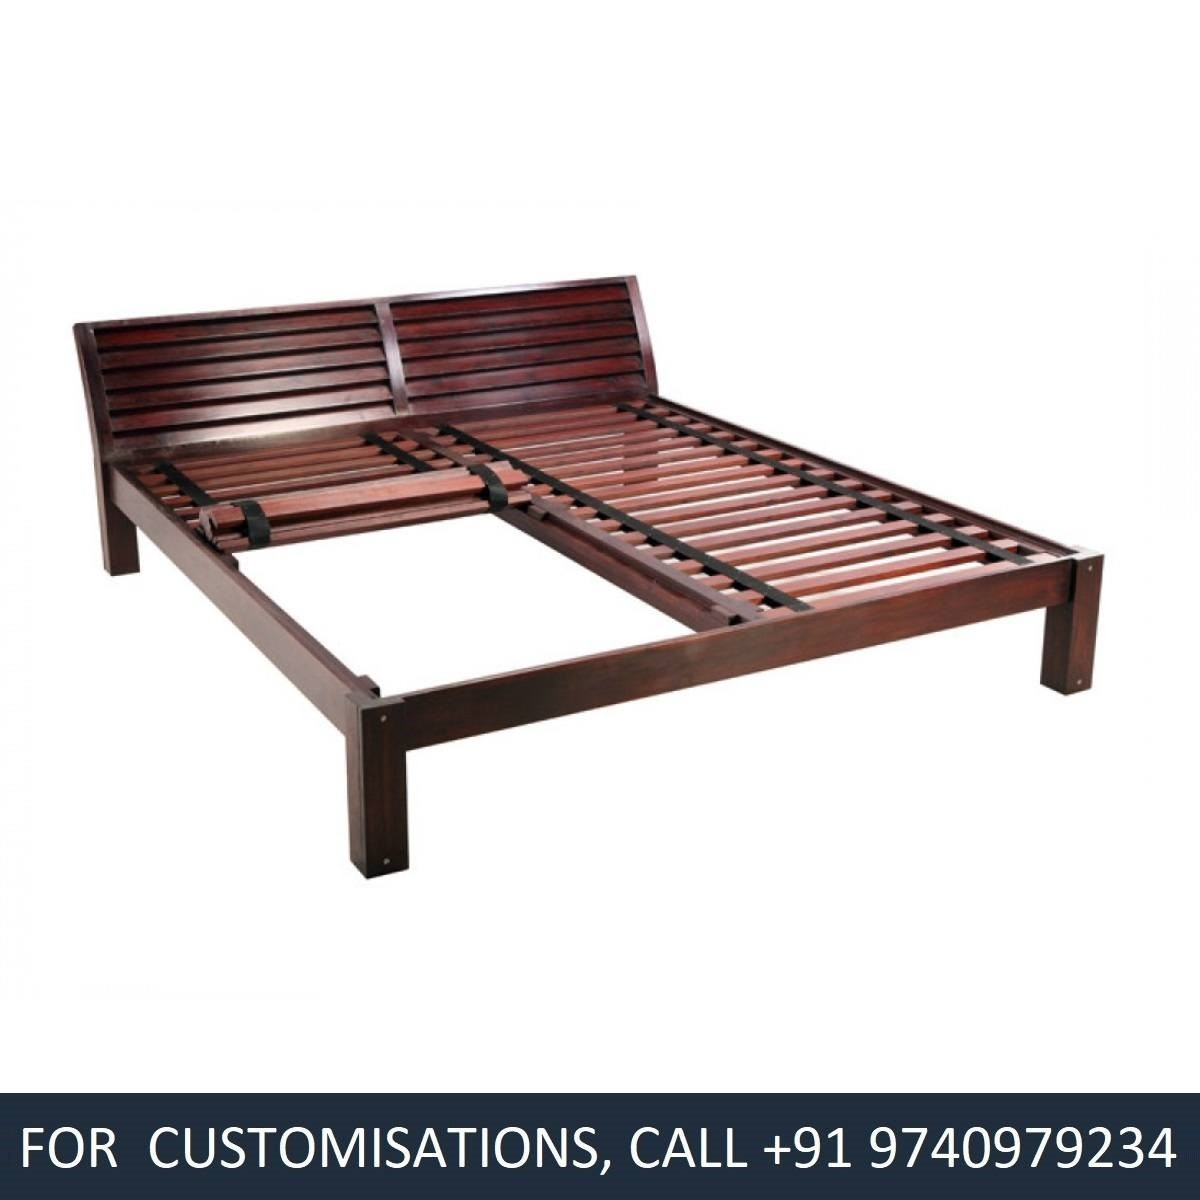 Madonna King Size Teak Wood Bed Price In India Buy Madonna King Size Teak Wood Bed Online Vyom Design